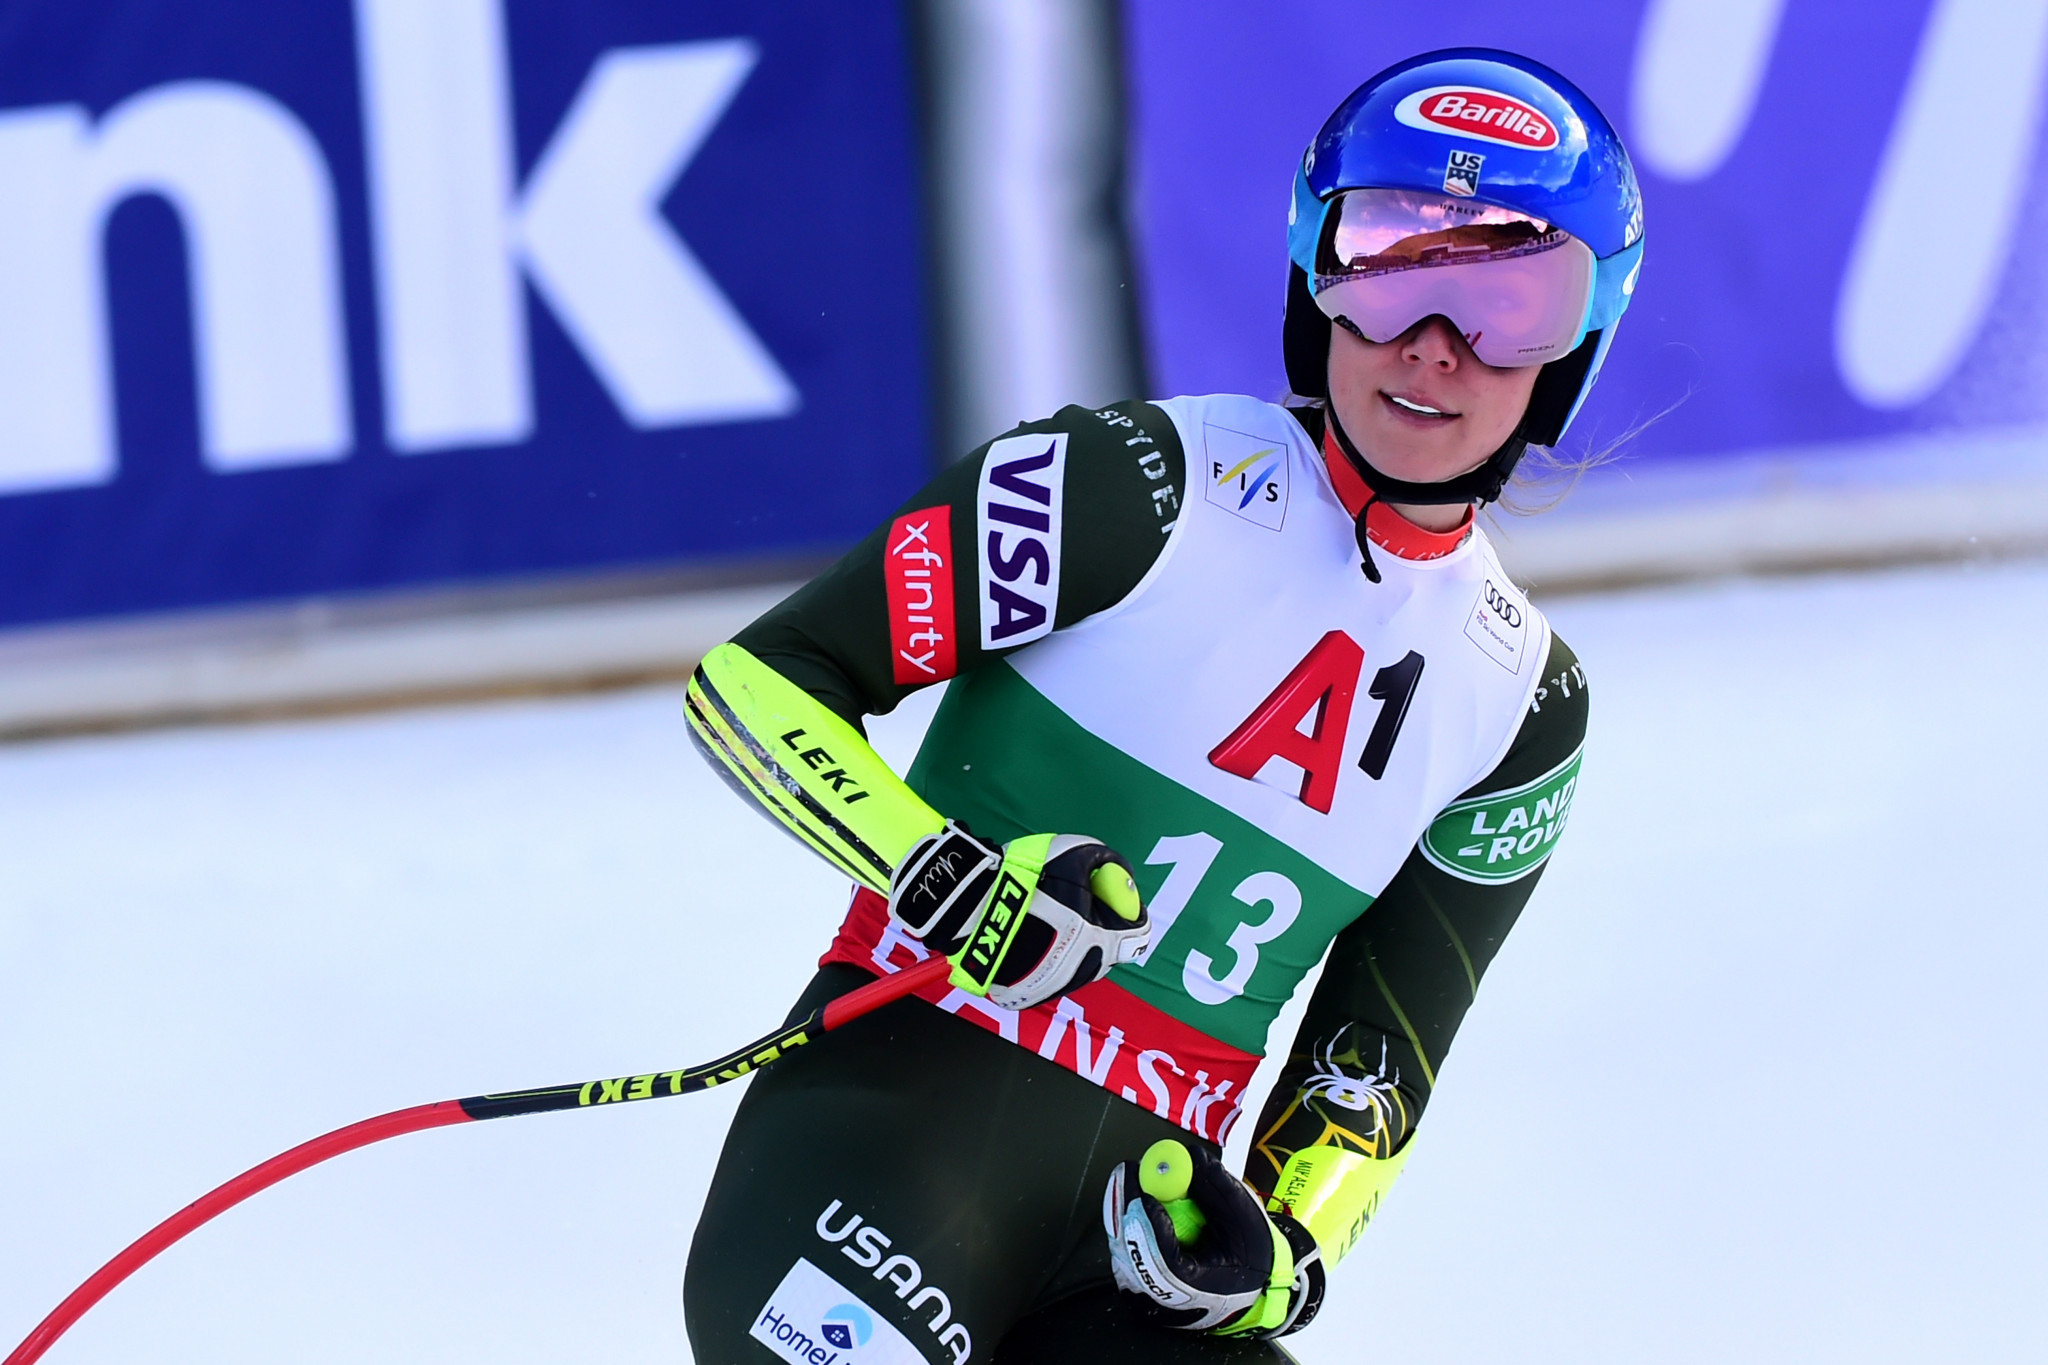 Shiffrin nominated for third consecutive Team USA Award